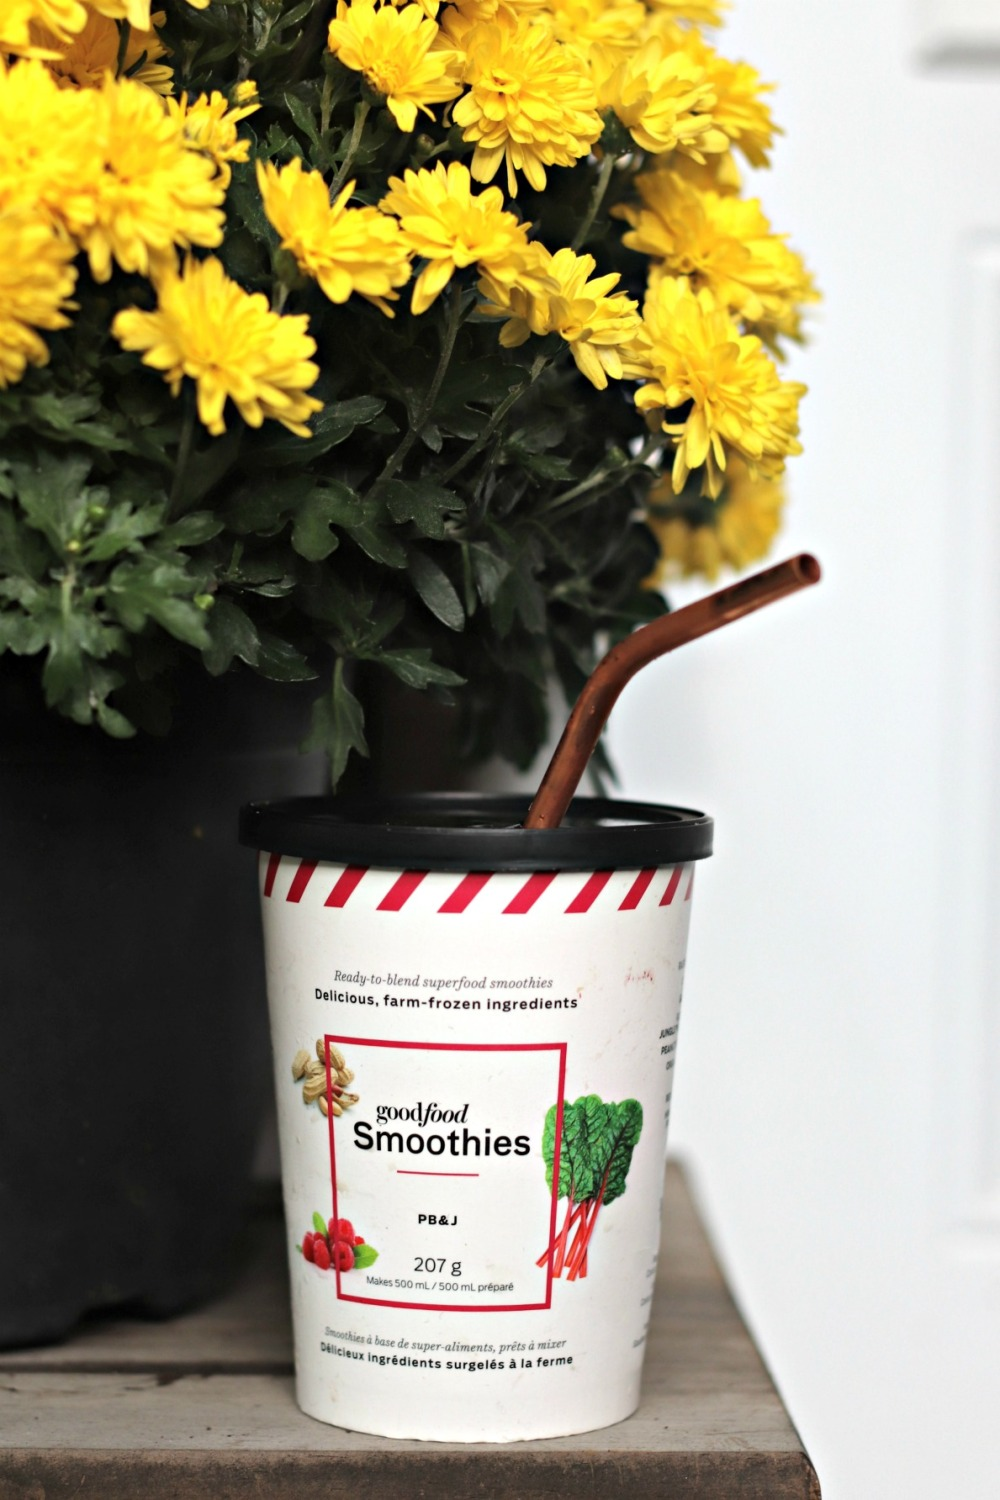 Goodfood Smoothies PB&J and mums